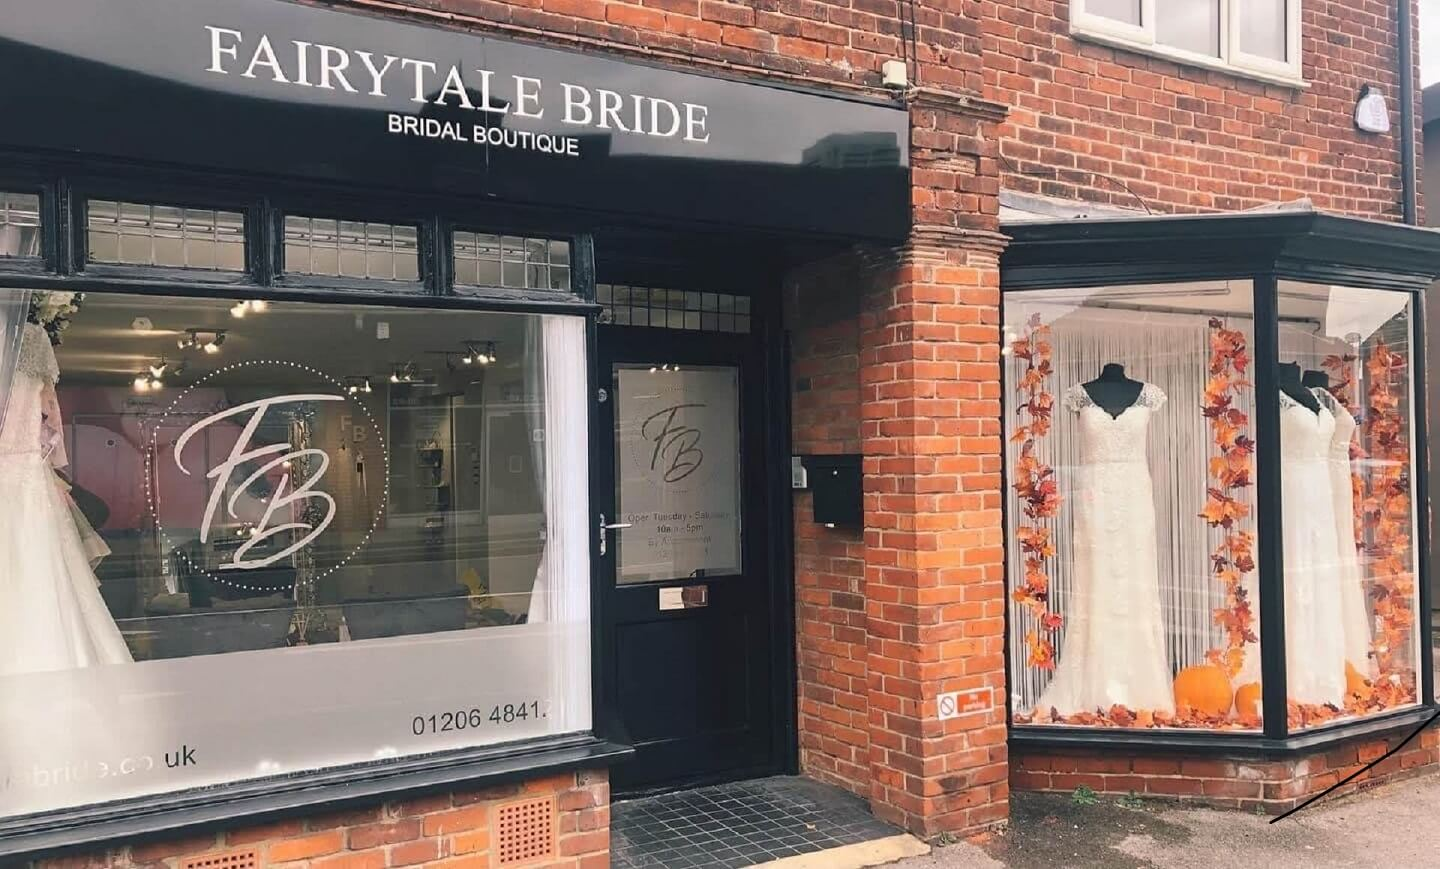 Wedding Dresses for Maldon Brides